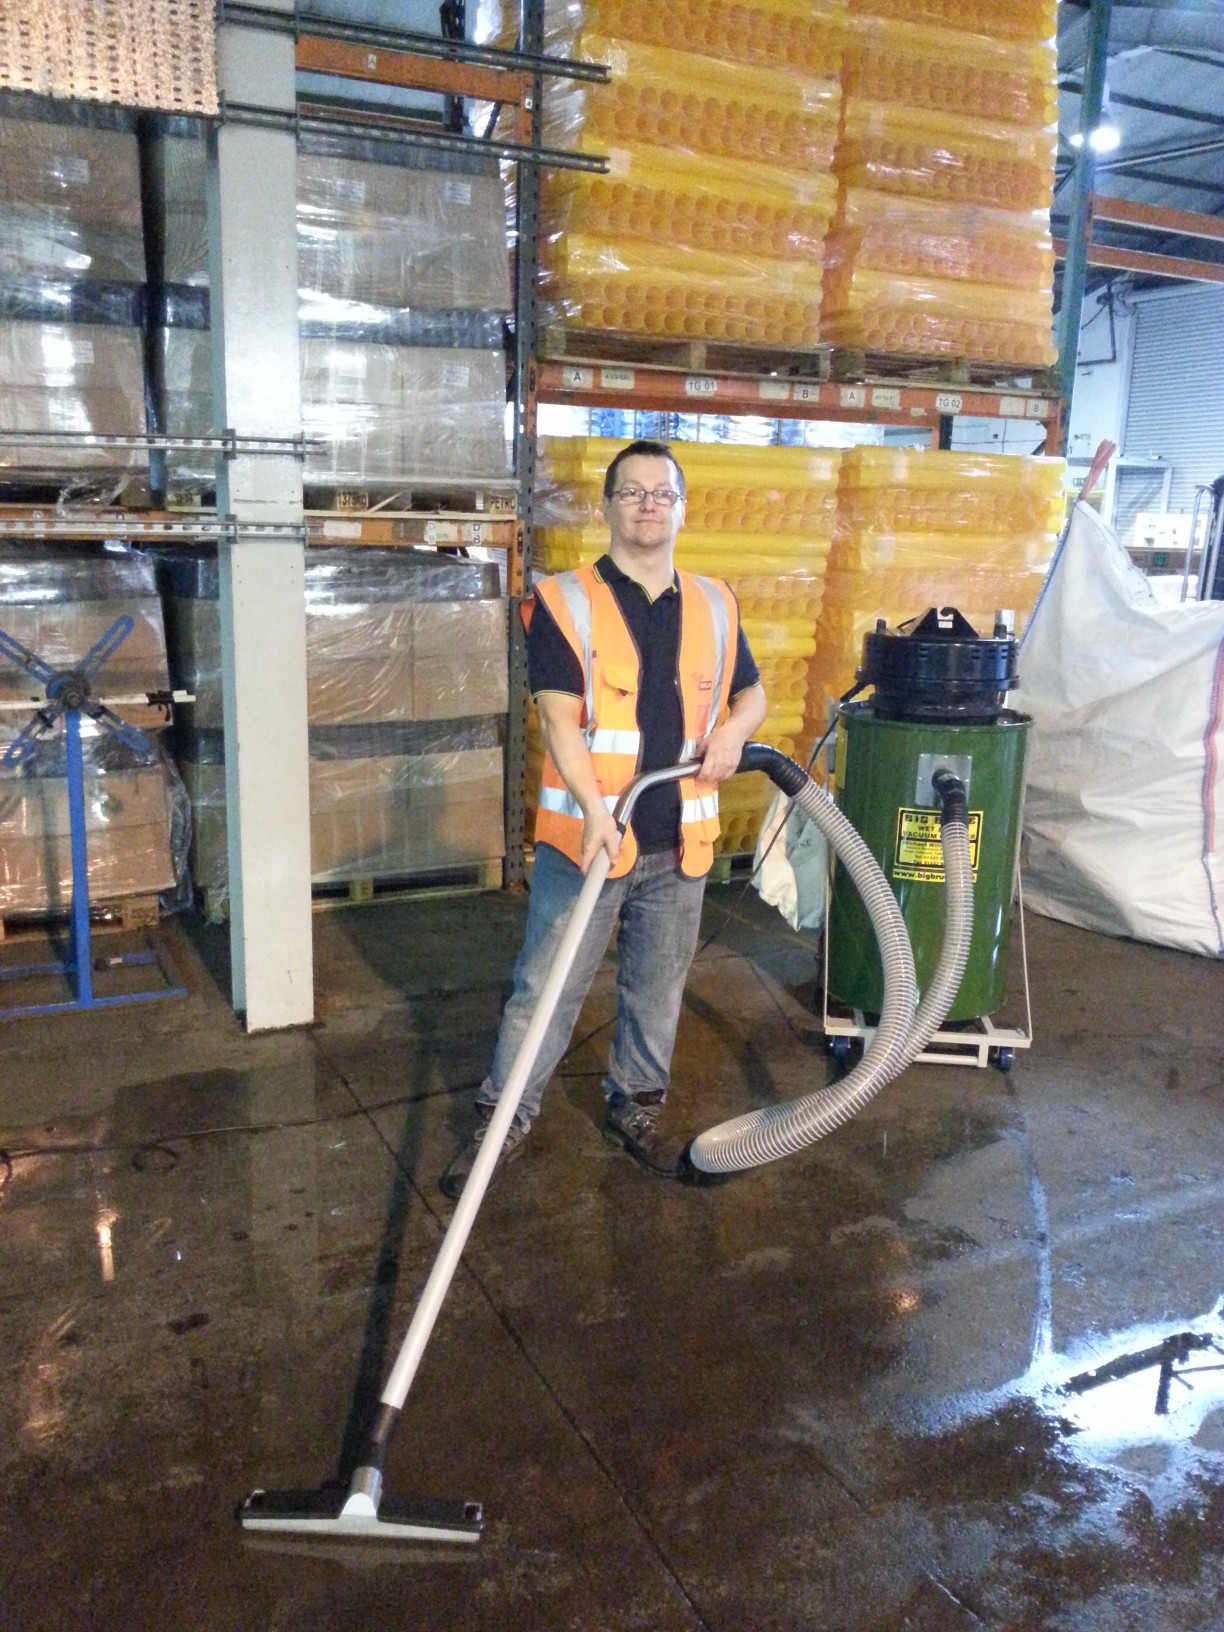 Naylor Specialist Plastics Are Cleaning Up With A Big Brute Wet And Dry Industrial Vacuum Cleaner